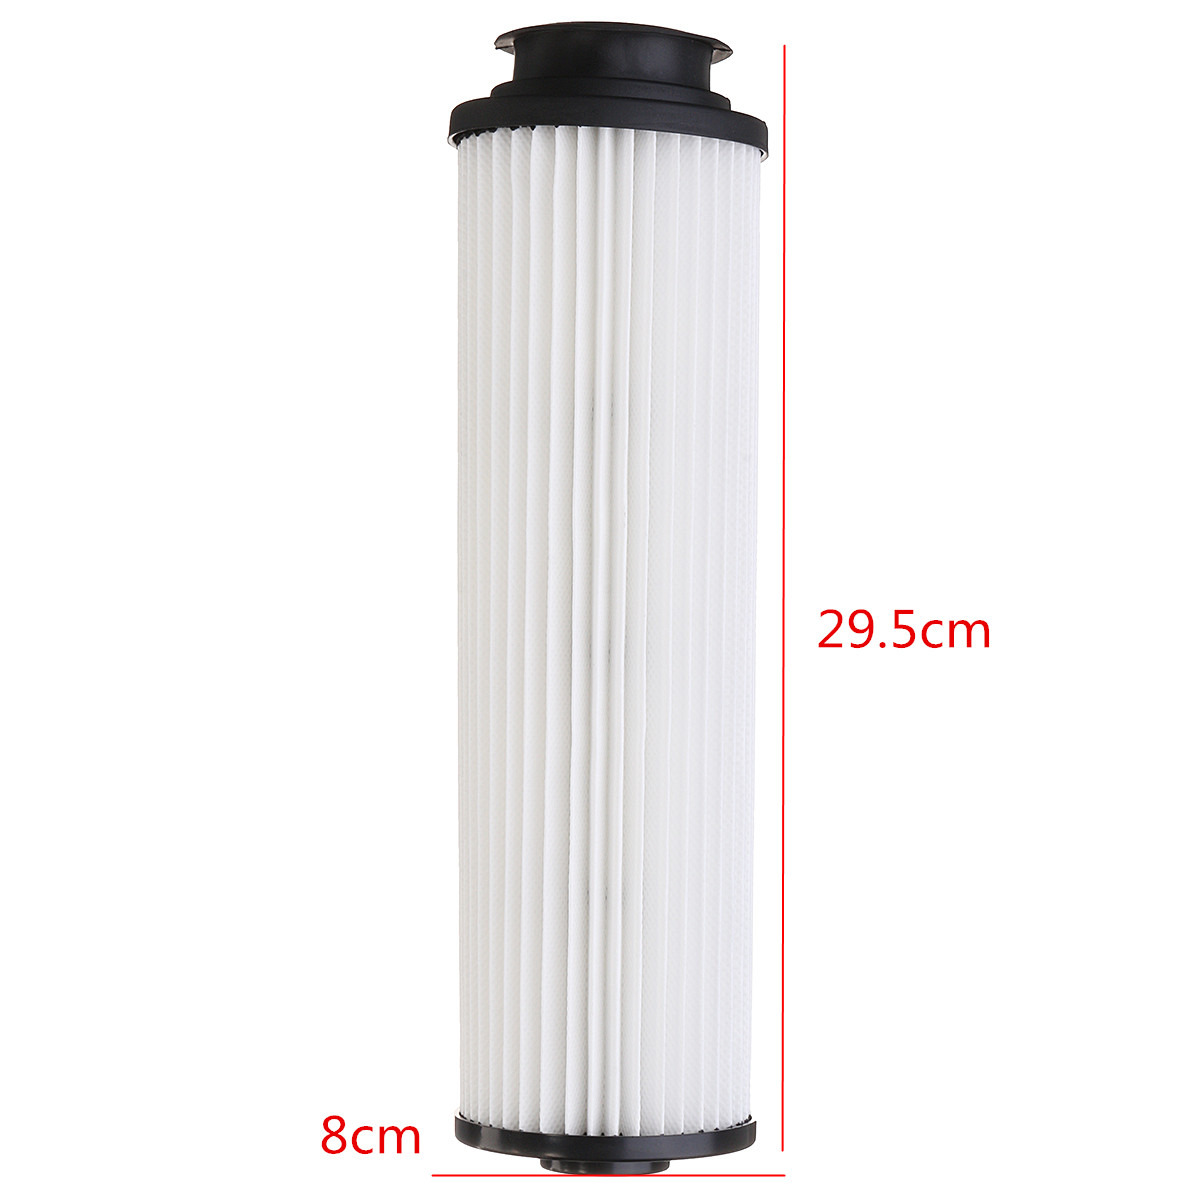 Vacuum Cleaner Cartridge Filter Replacement for Hoover Windtunnel Savvy 40140201 43611042